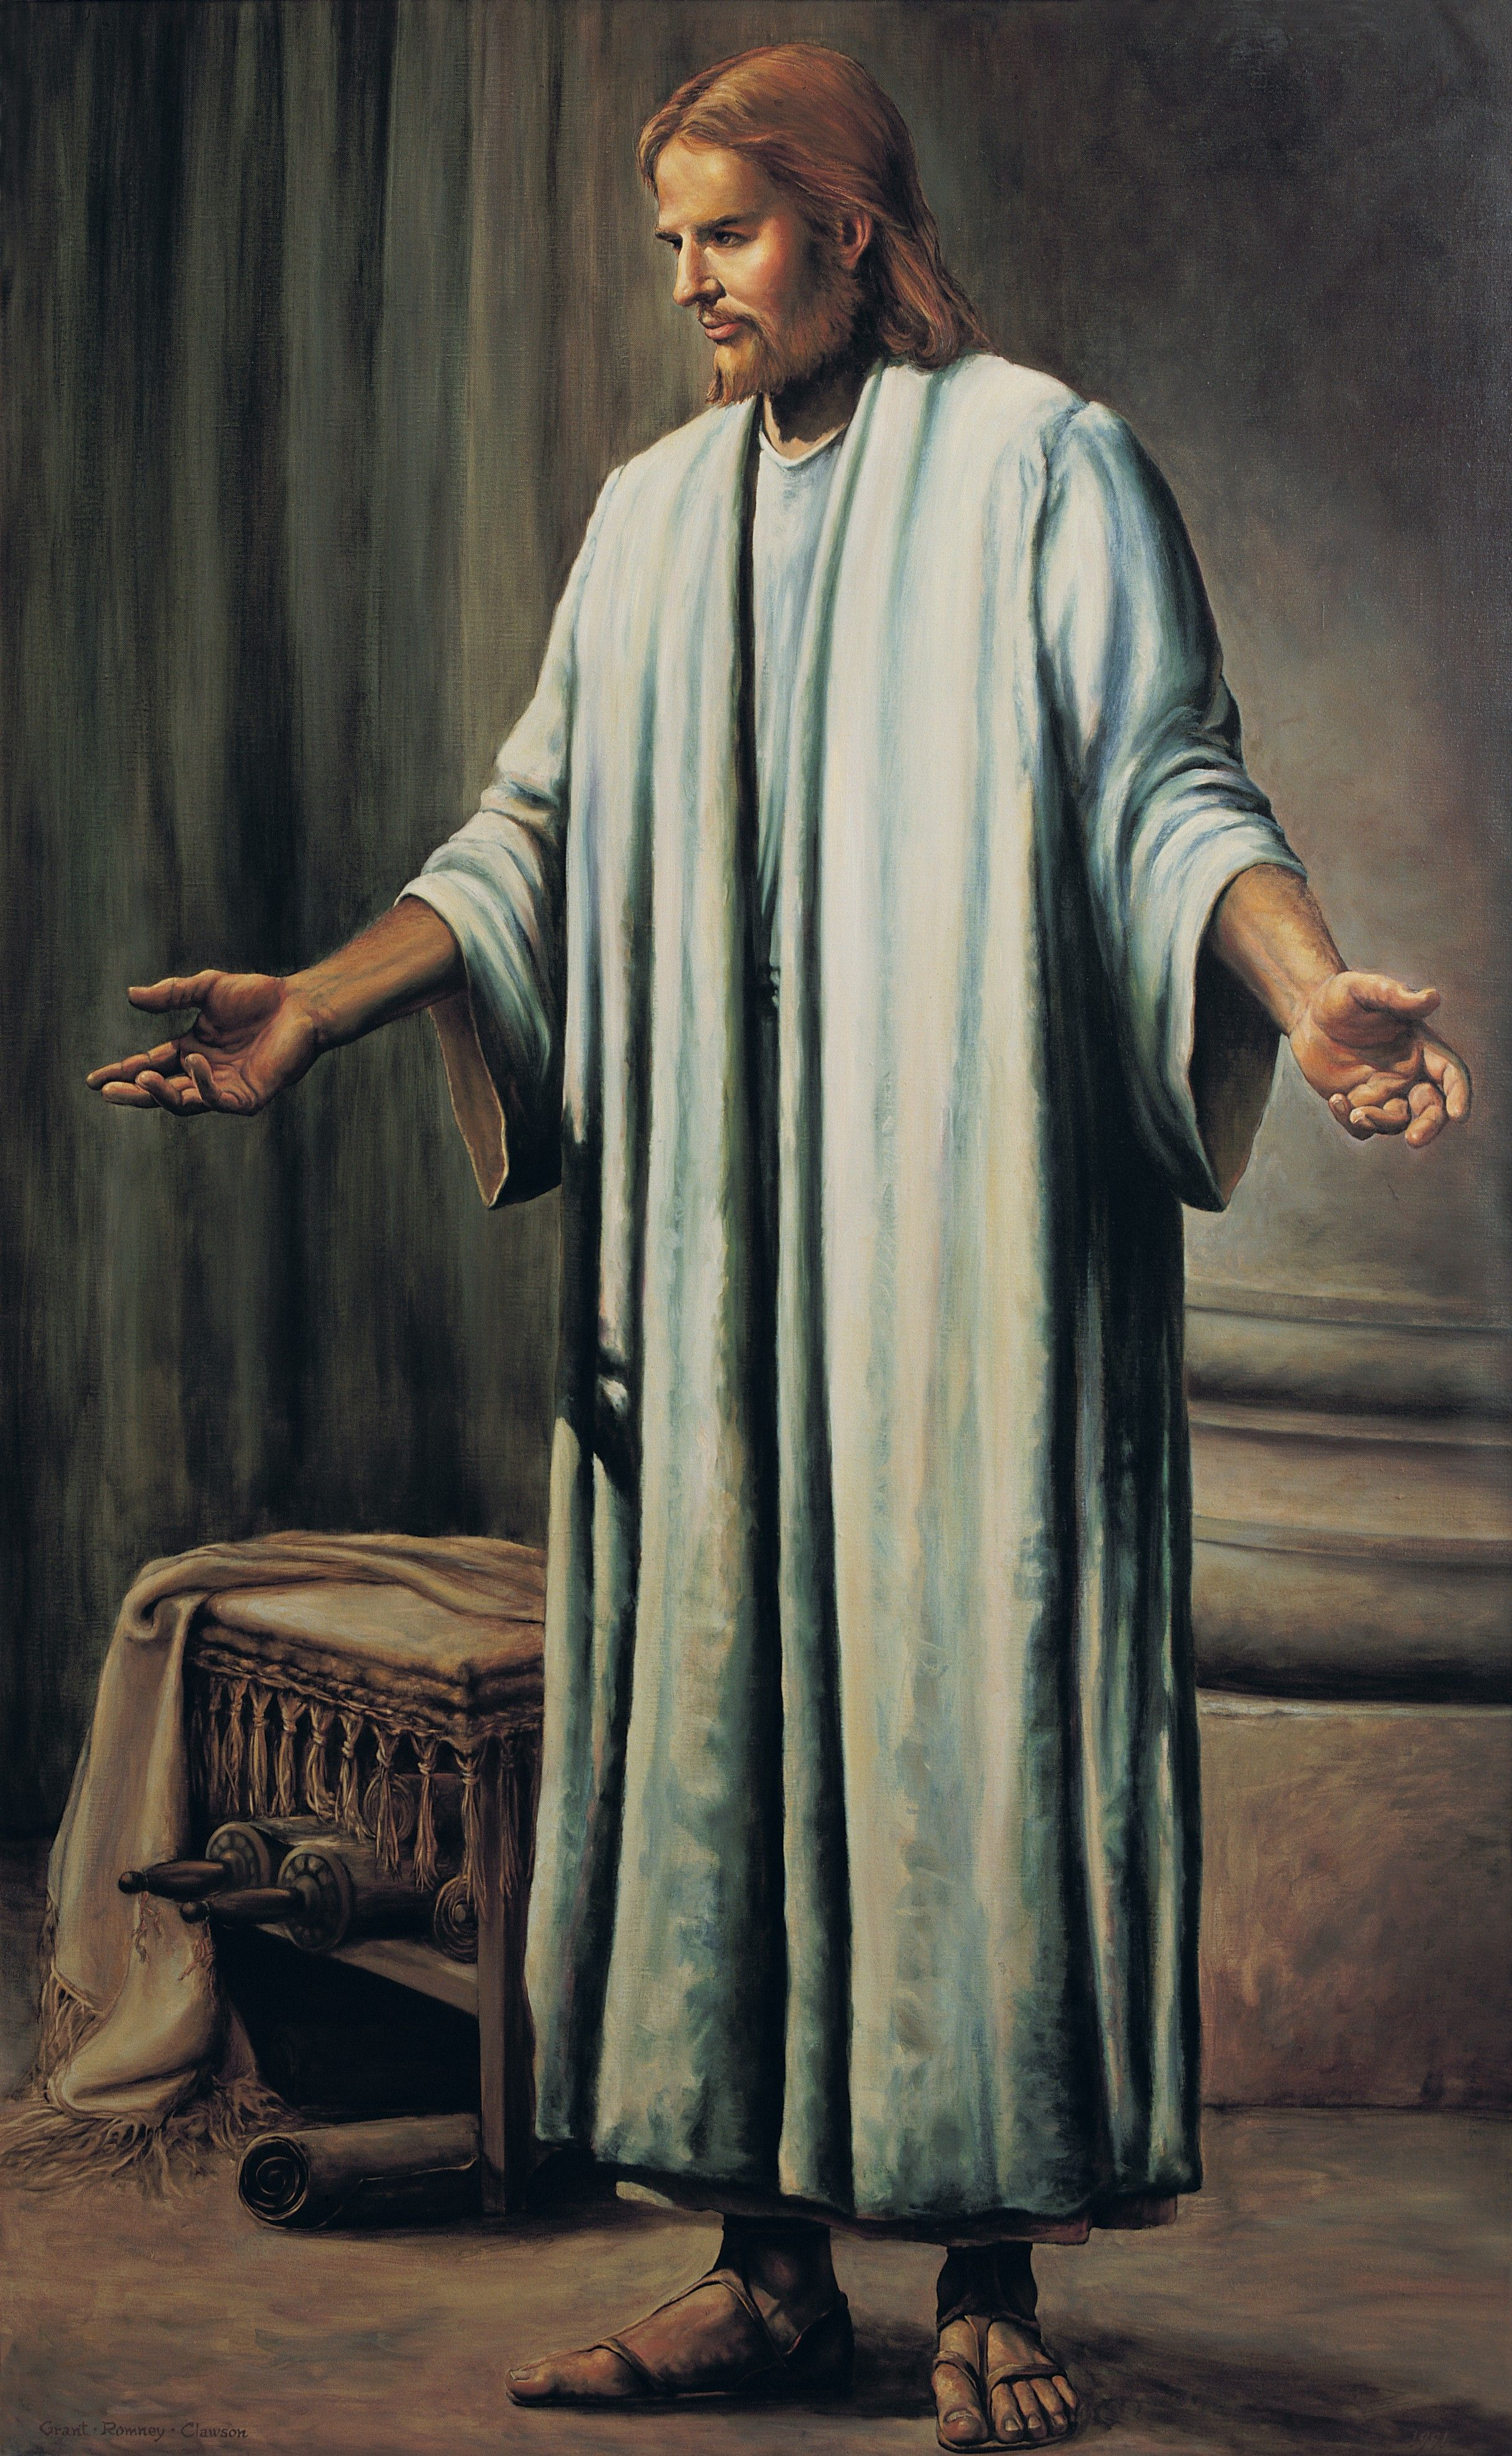 Jesus Christ in White Robes, by Grant Romney Clawson